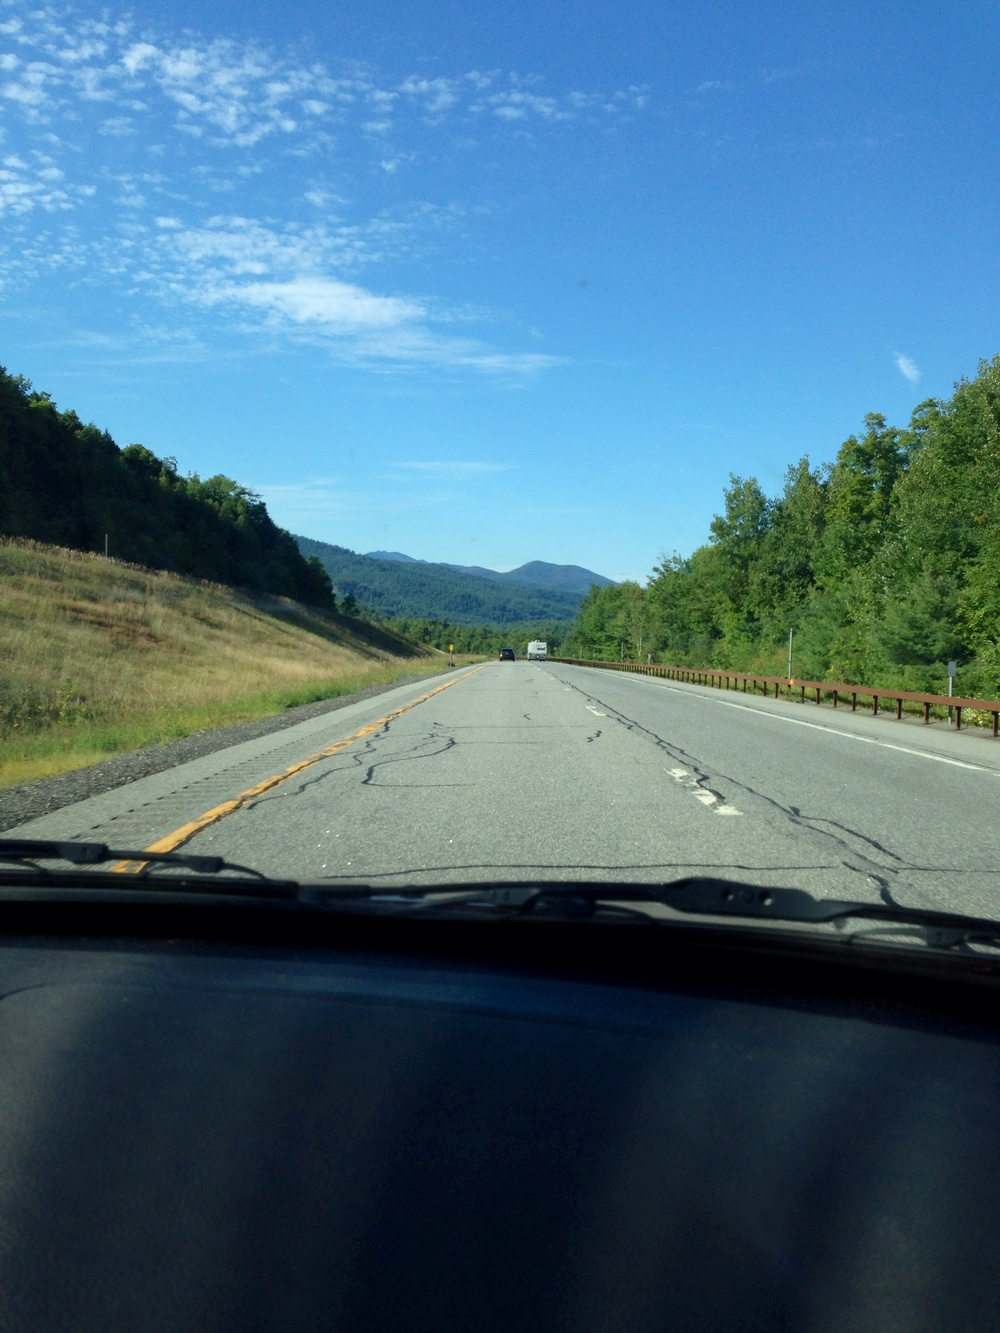 On the road to Montréal-Catskills New York